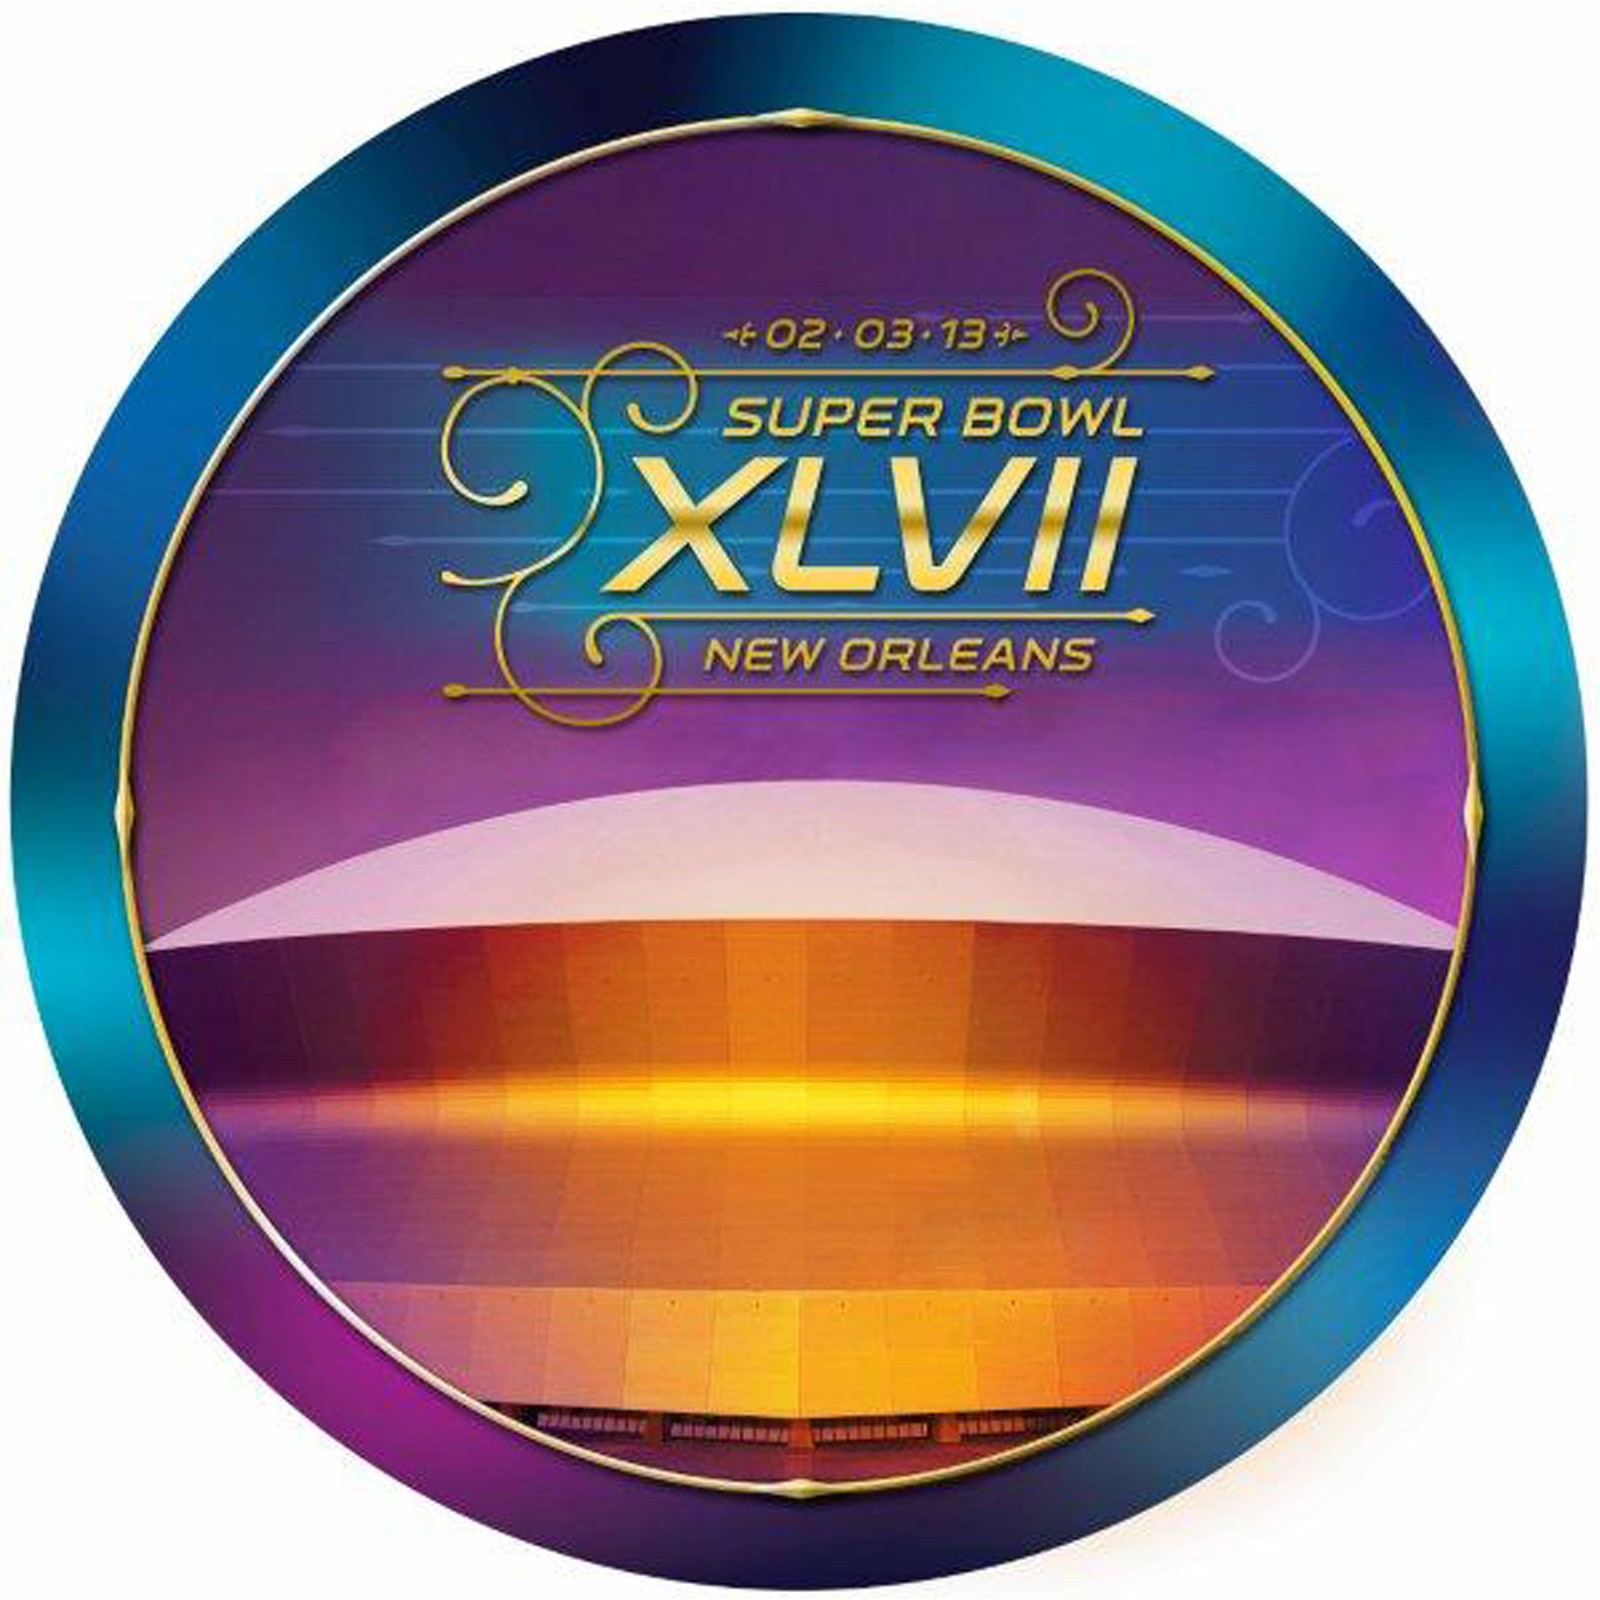 super-bowl-xlvii-logo-new-orleans-solar-news